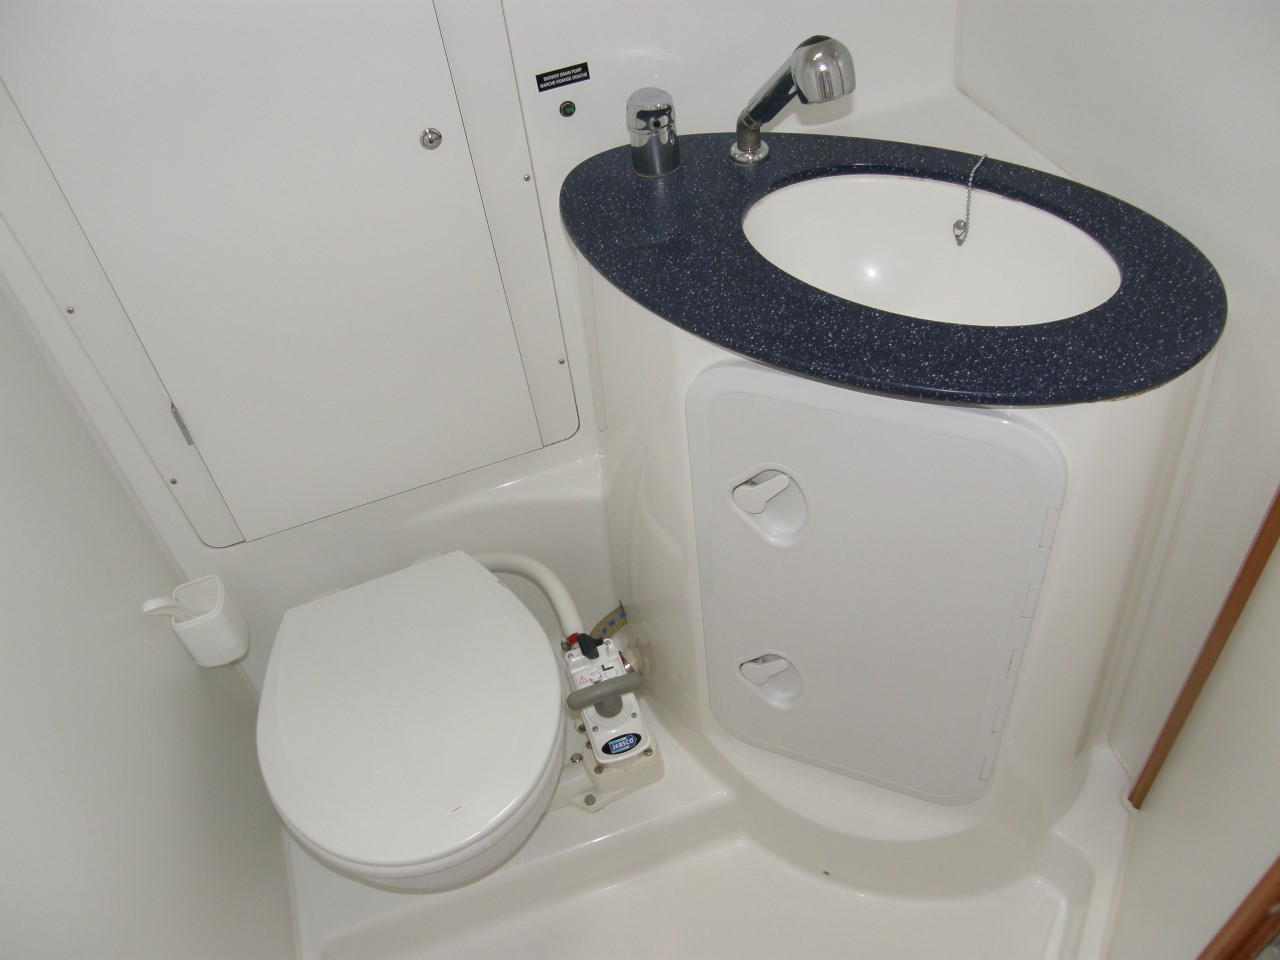 Cyclades 50.5 Interior Toilet